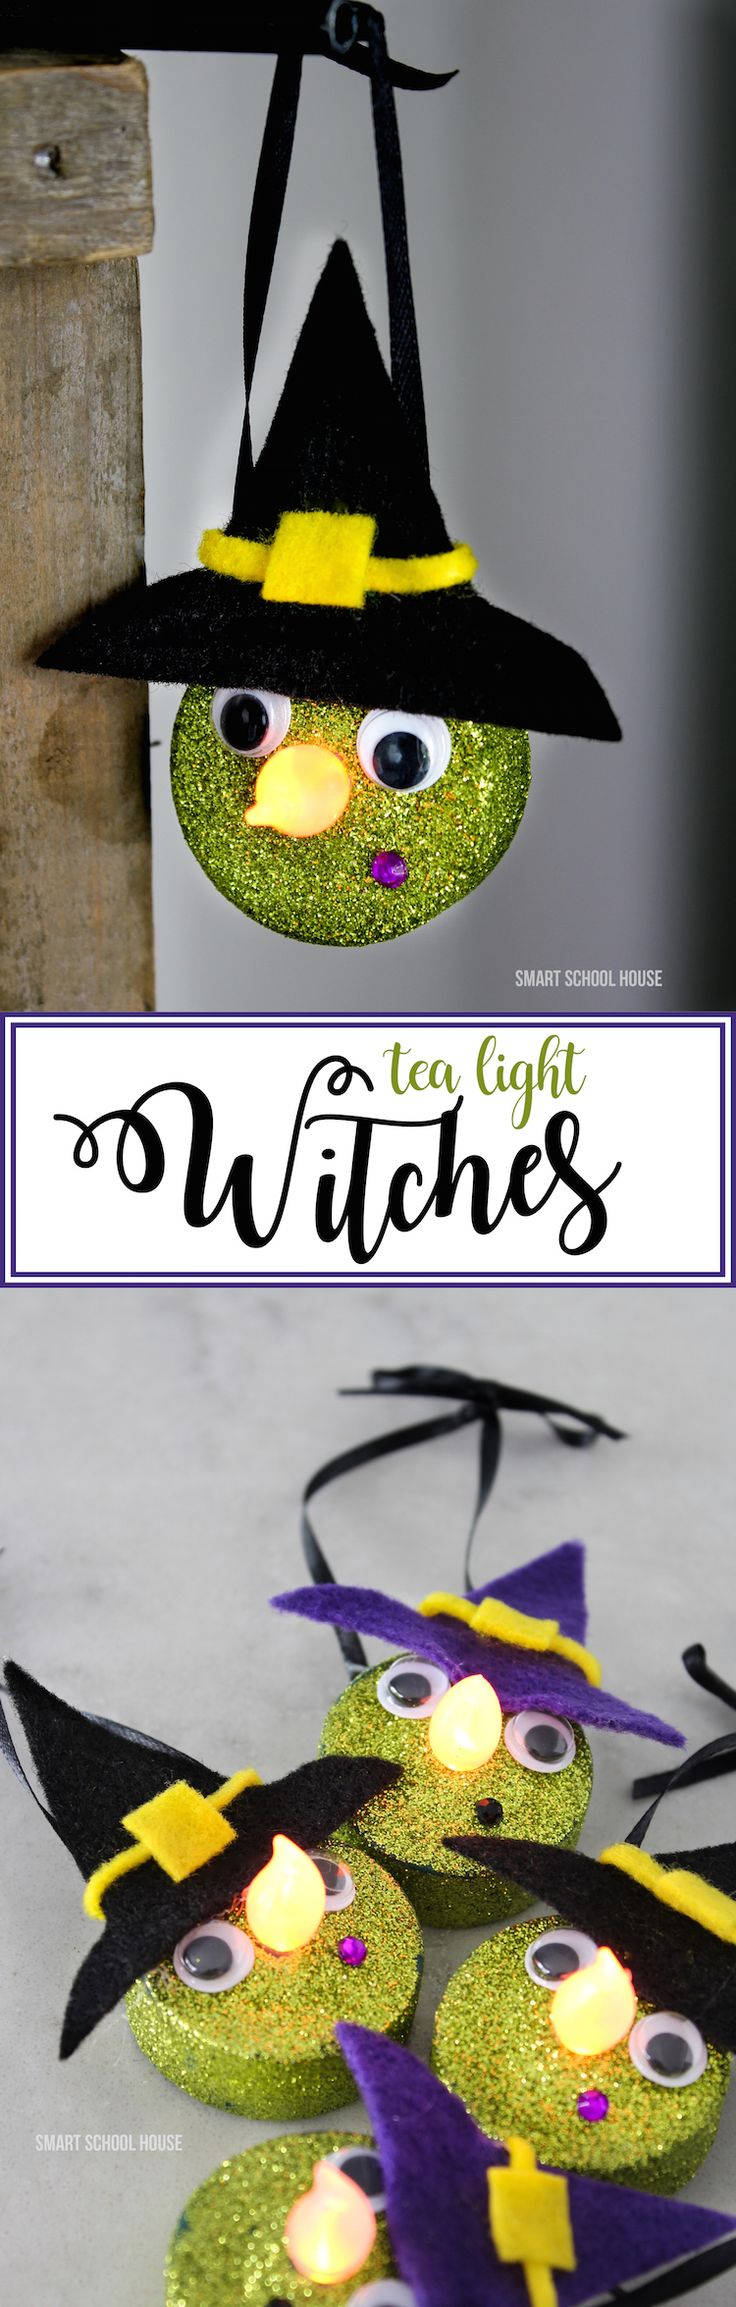 tea light witches are very easy to make and look so cute turn on the holidays halloweenhalloween stuffhalloween craftshalloween - Decoration For Halloween Ideas